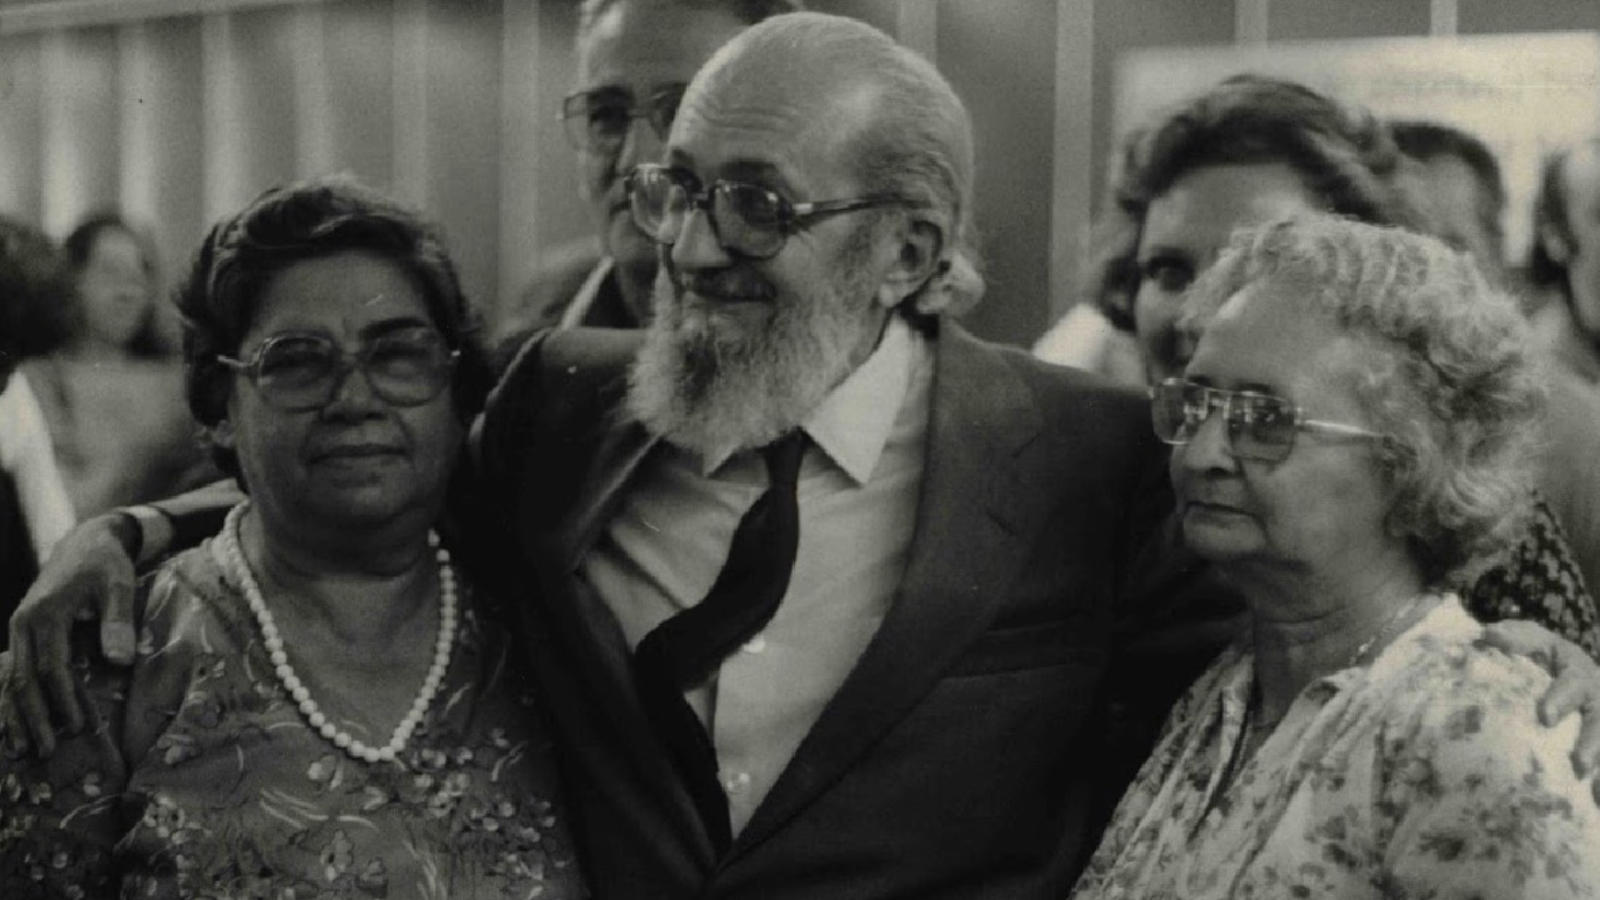 Paulo Freire after his return to Brazil after 16 years in exile. Photo: 1979 by Folhapress